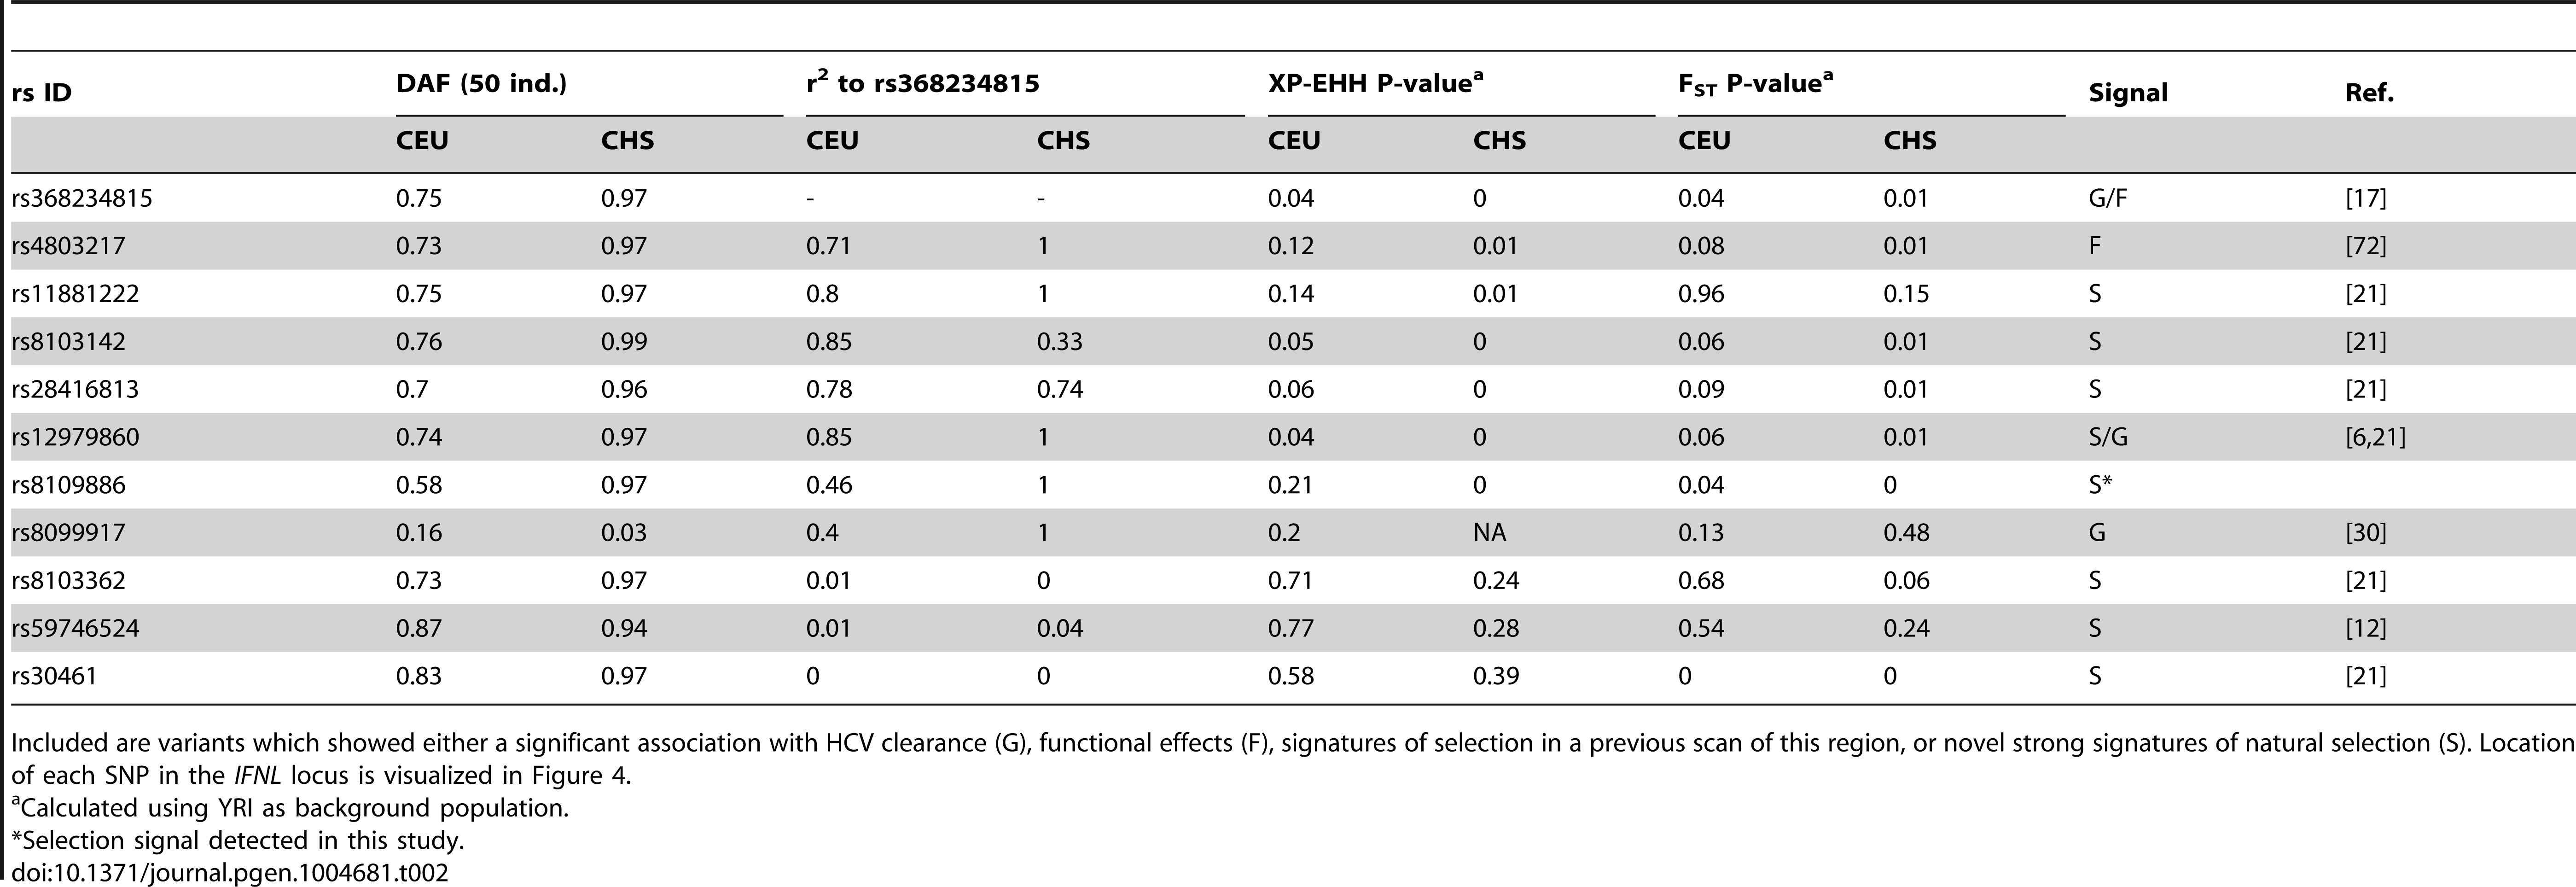 Derived allele frequency (DAF), LD to rs368234815, and signatures of selection (empirical P-values for F<sub>ST</sub> and XP-EHH) for other relevant SNPs across the <i>IFNL</i>-locus.